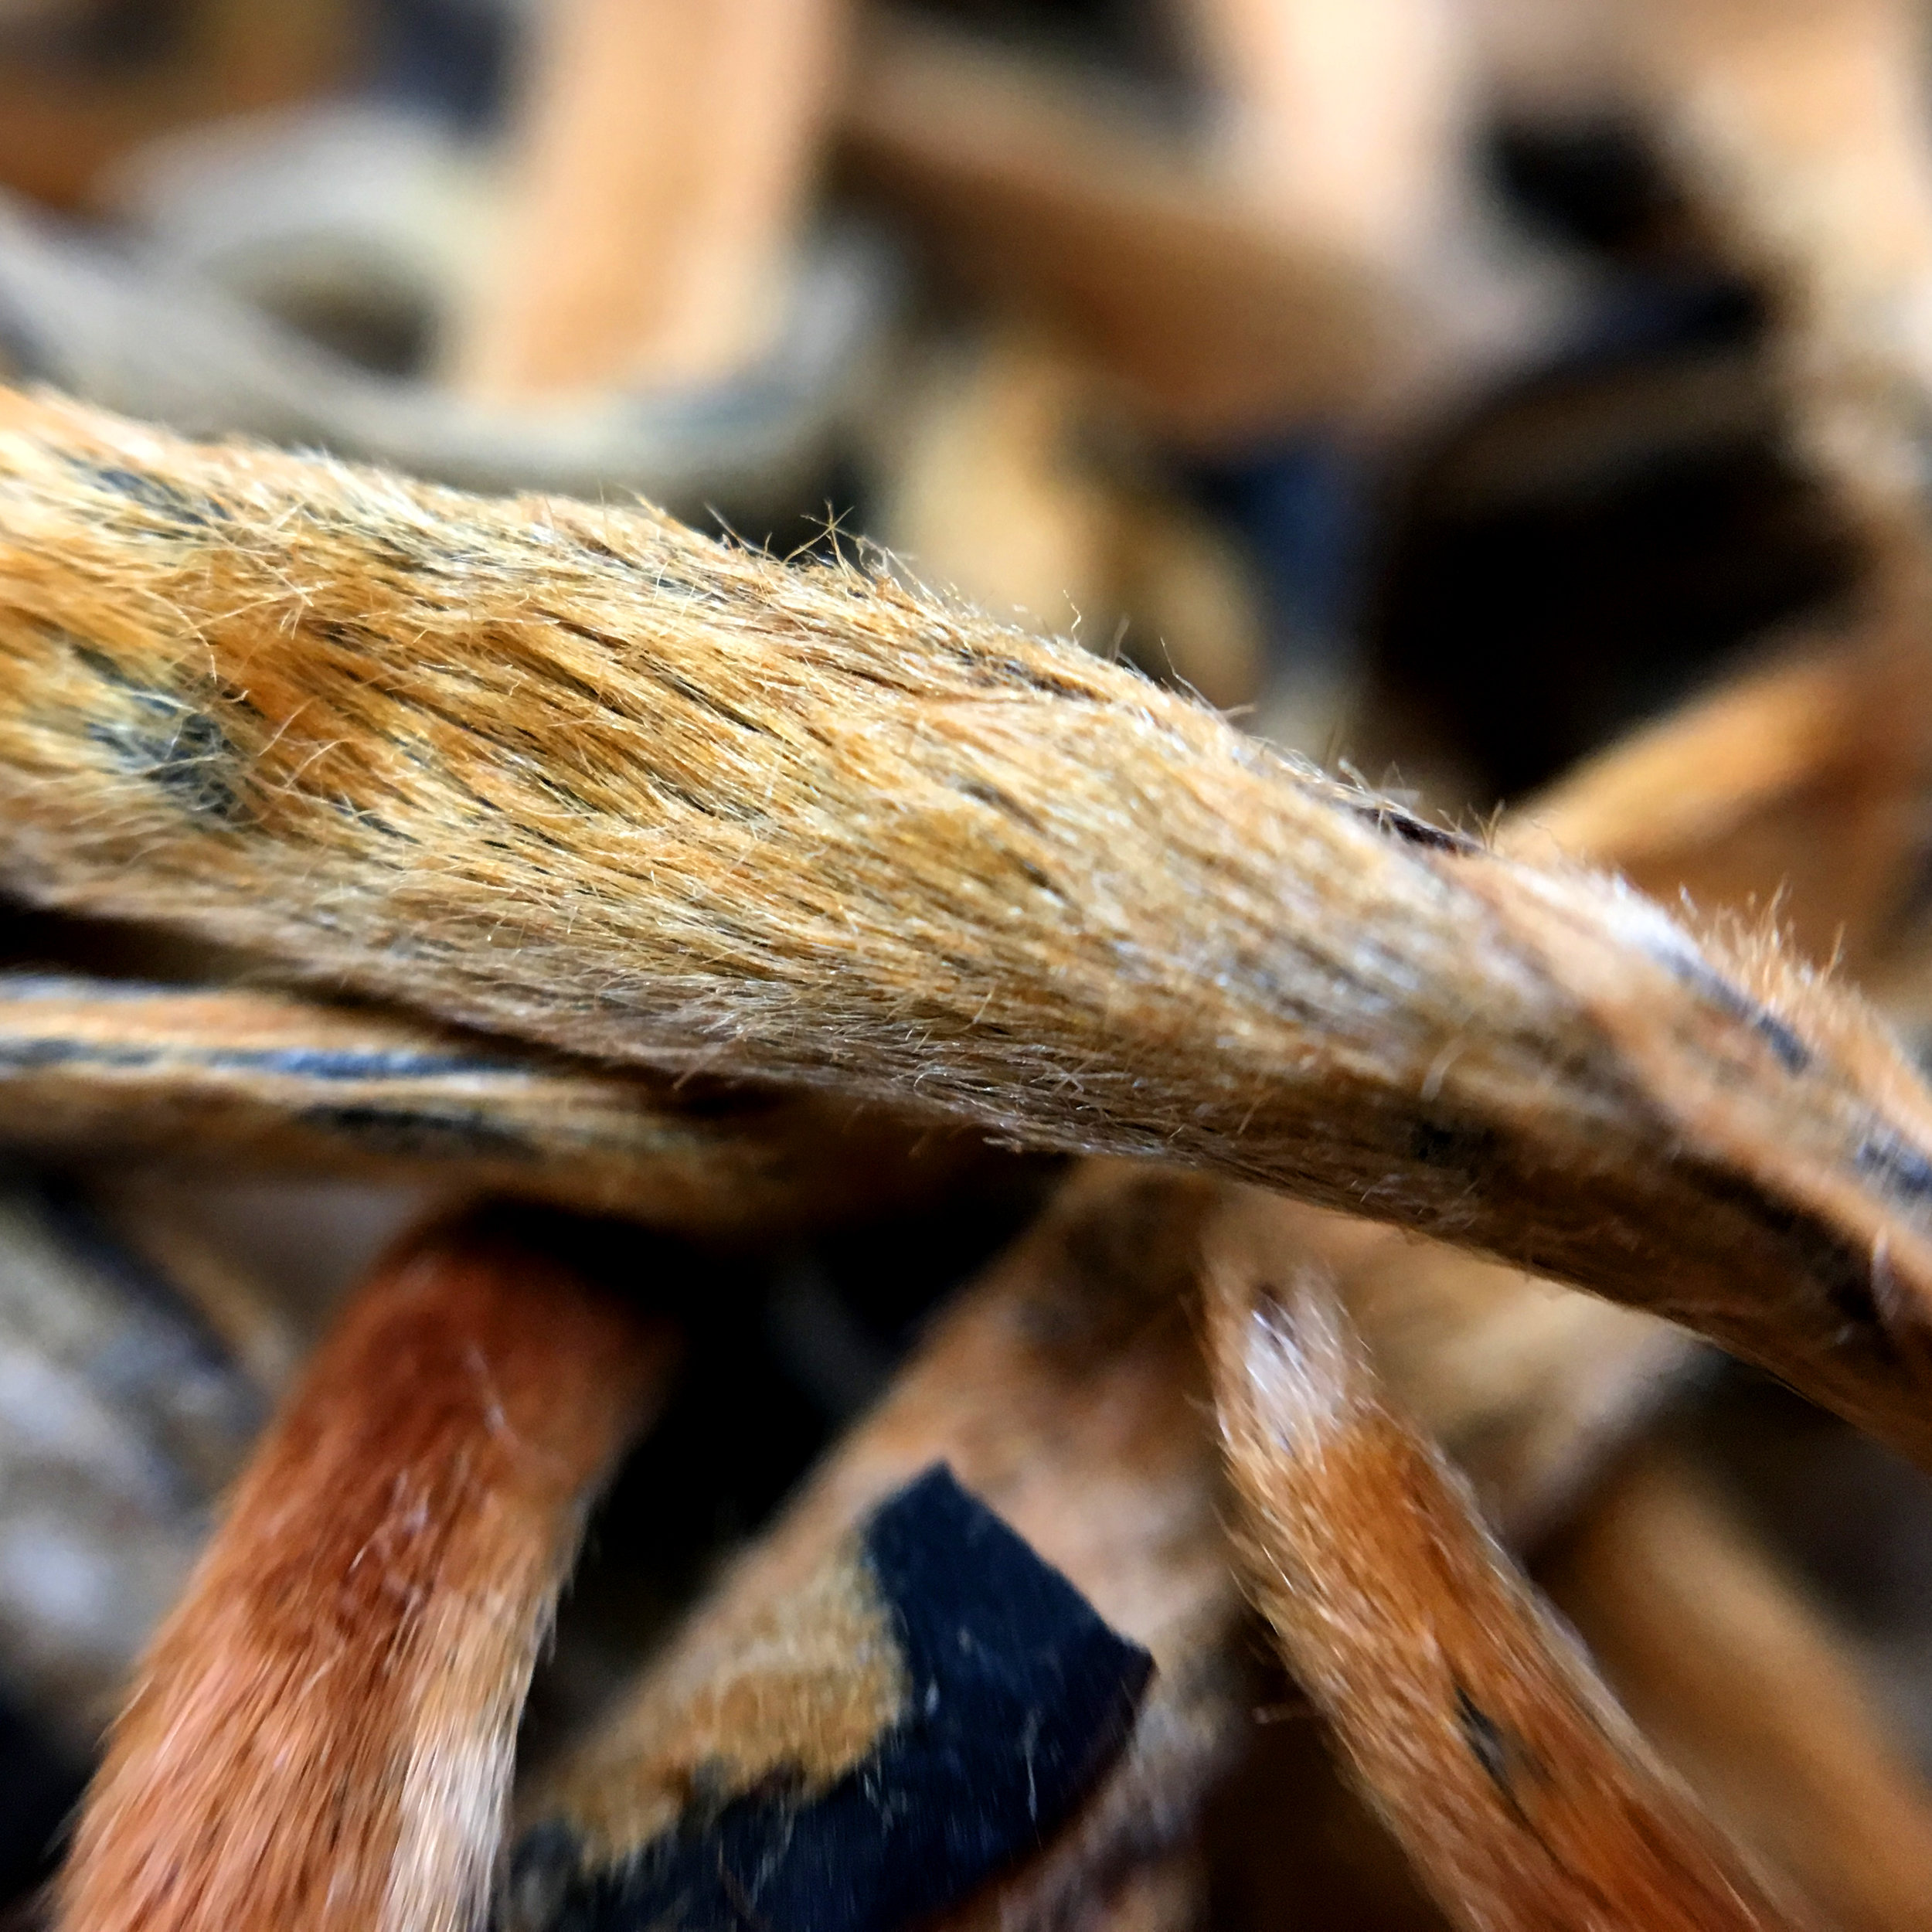 yunnan-golden-needles-black-tea-china-macro.JPG